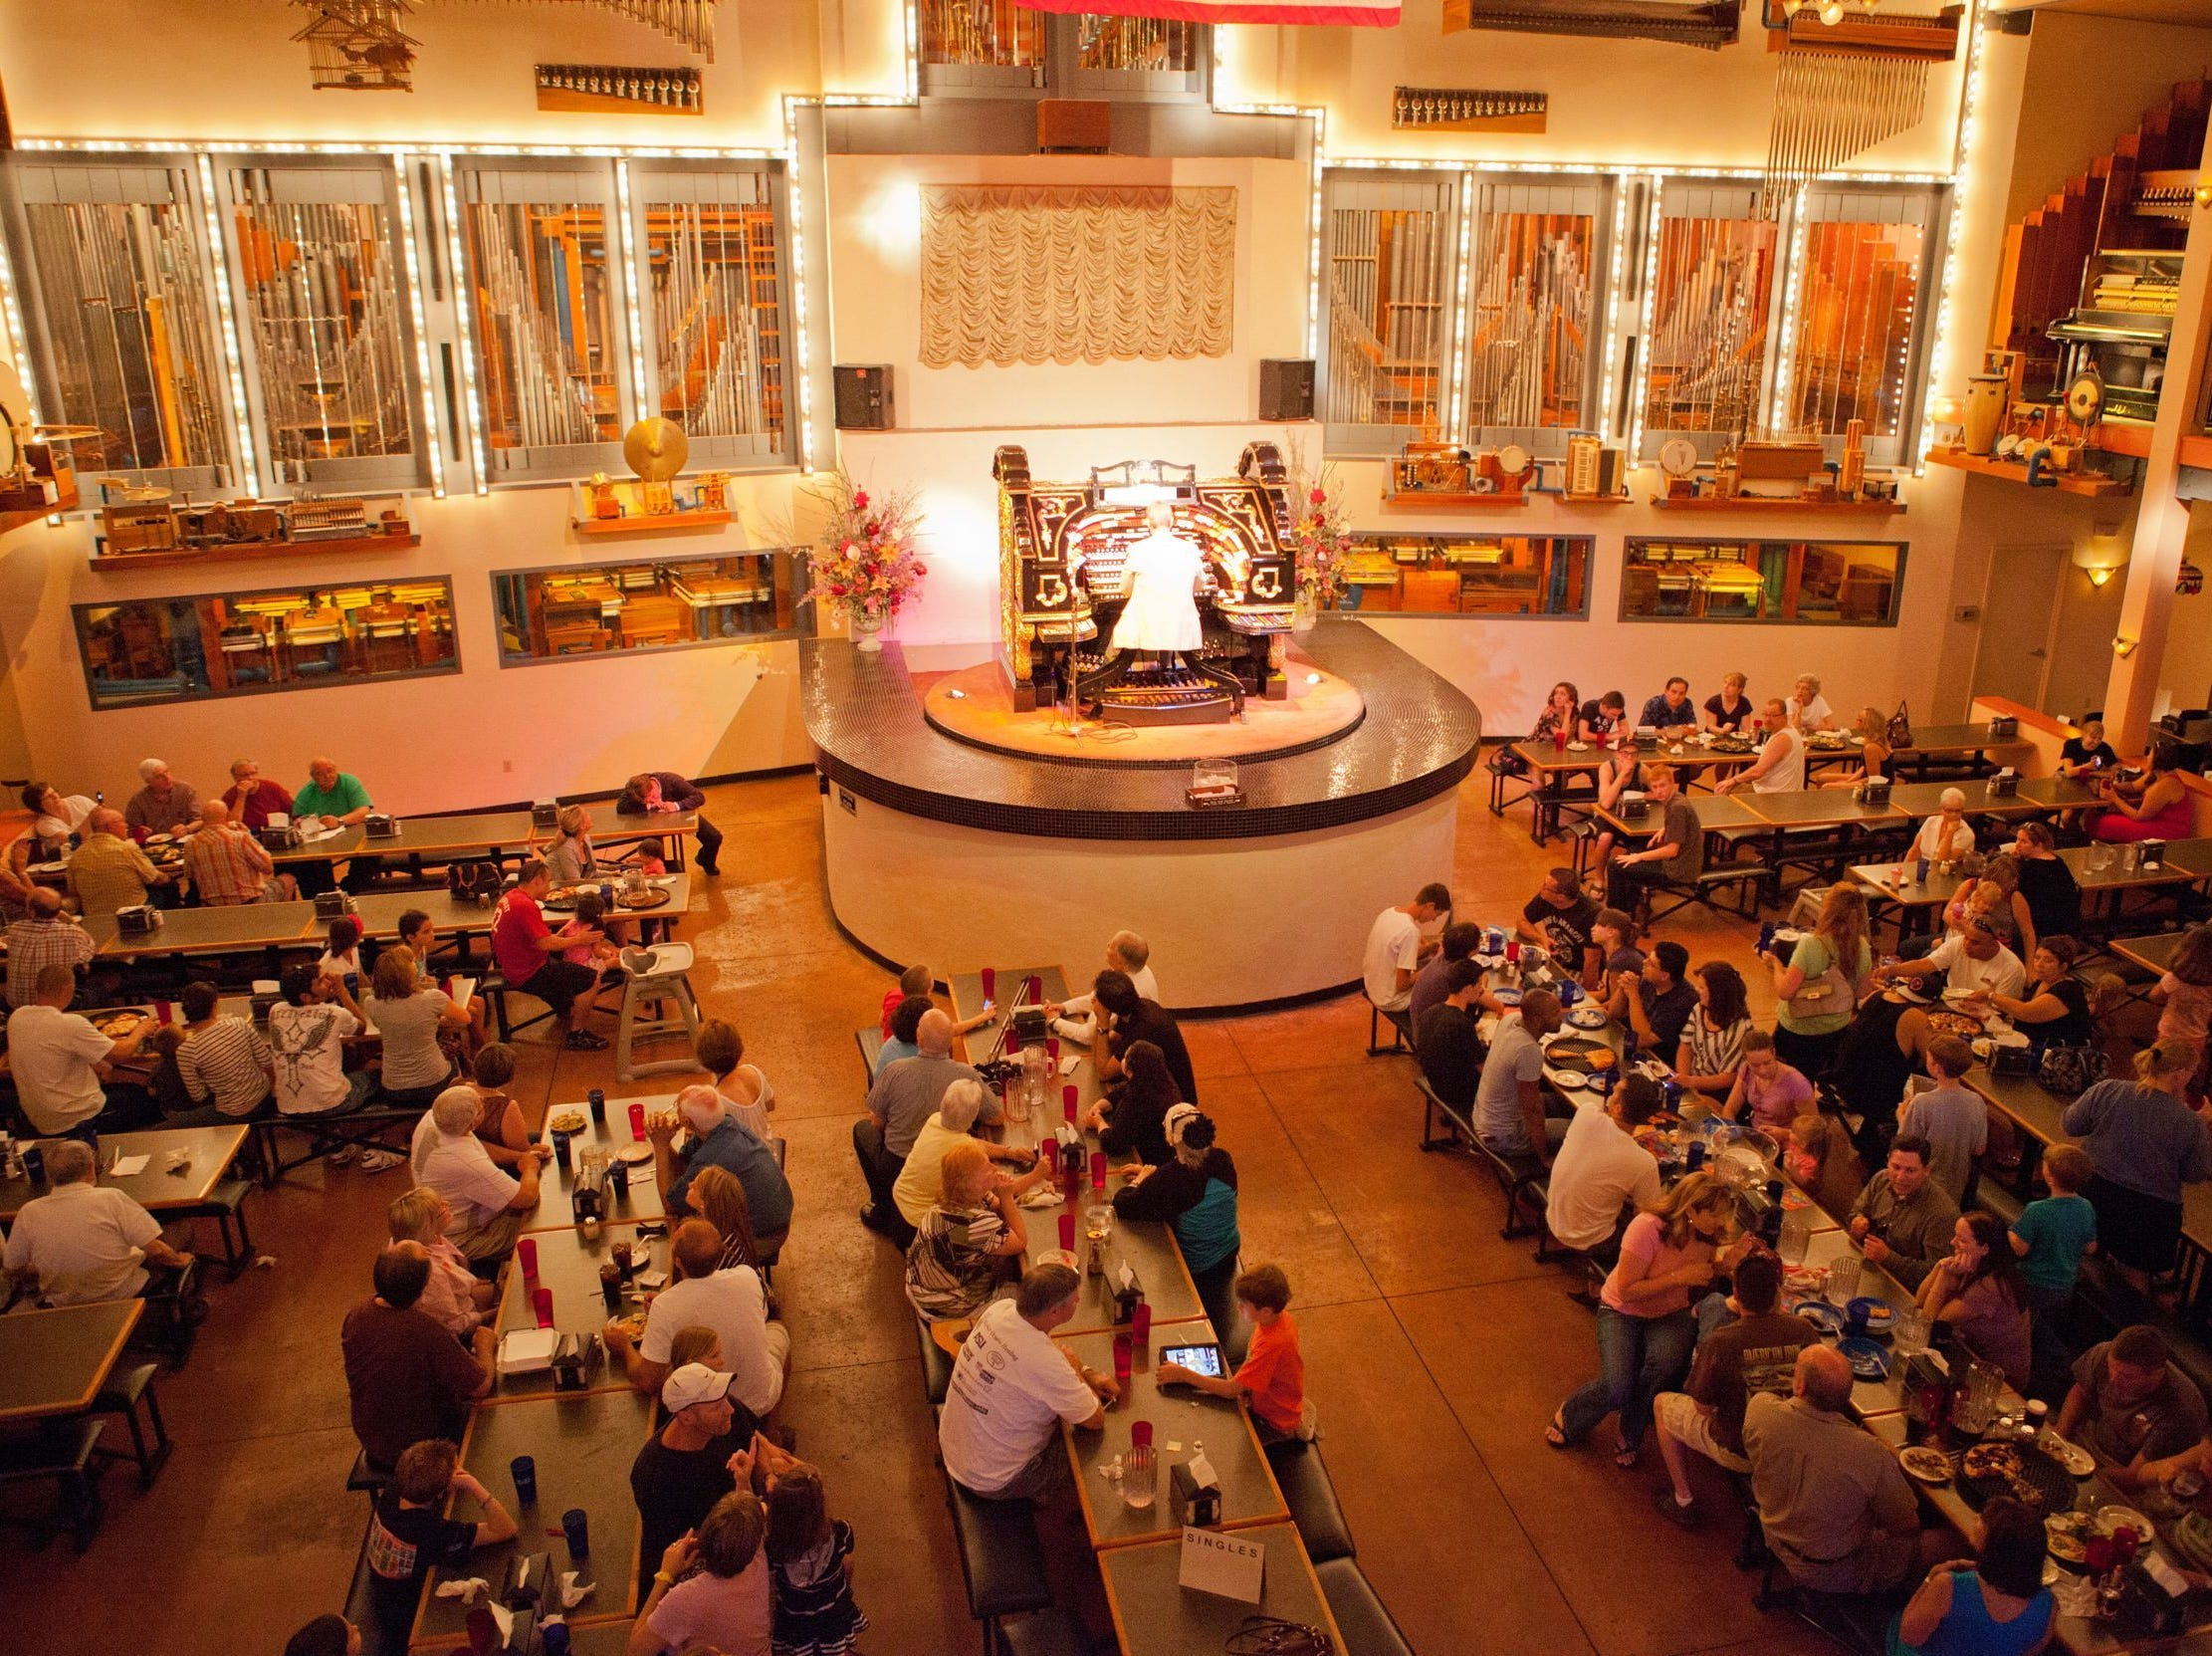 ORGAN STOP PIZZA | The popular Easter Musical Lunch with the Mighty Wurlitzer concert includes all-you-can-eat pizza, salad and unlimited soft drinks ($12, $10 for ages 9 and younger). Doors open at 11:15 a.m. and the show starts at 11:45 a.m. Advanced ticket purchase is required.DETAILS: 1149 E. Southern Ave., Mesa. 480-813-5700, ext. 945, organstoppizza.com.